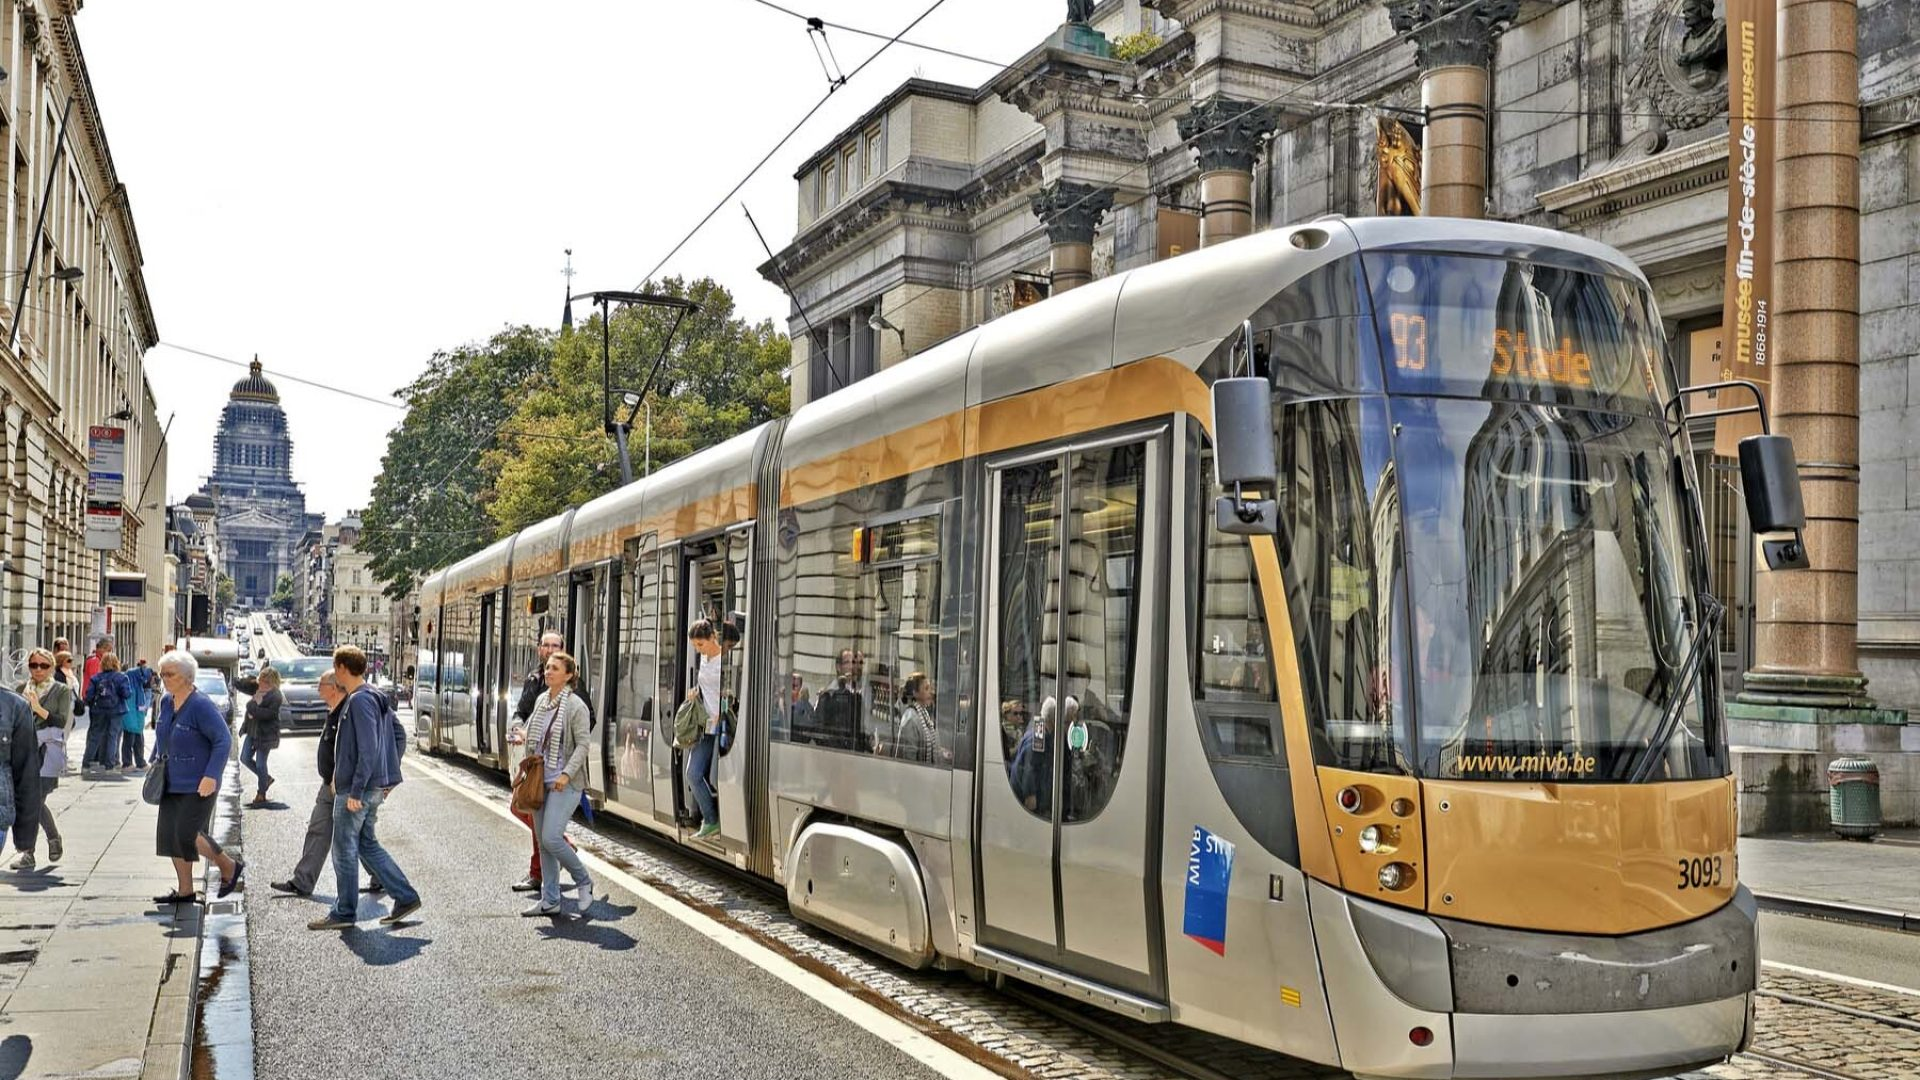 Public transportation in Belgium: trains, trams, metro & more | Expatica